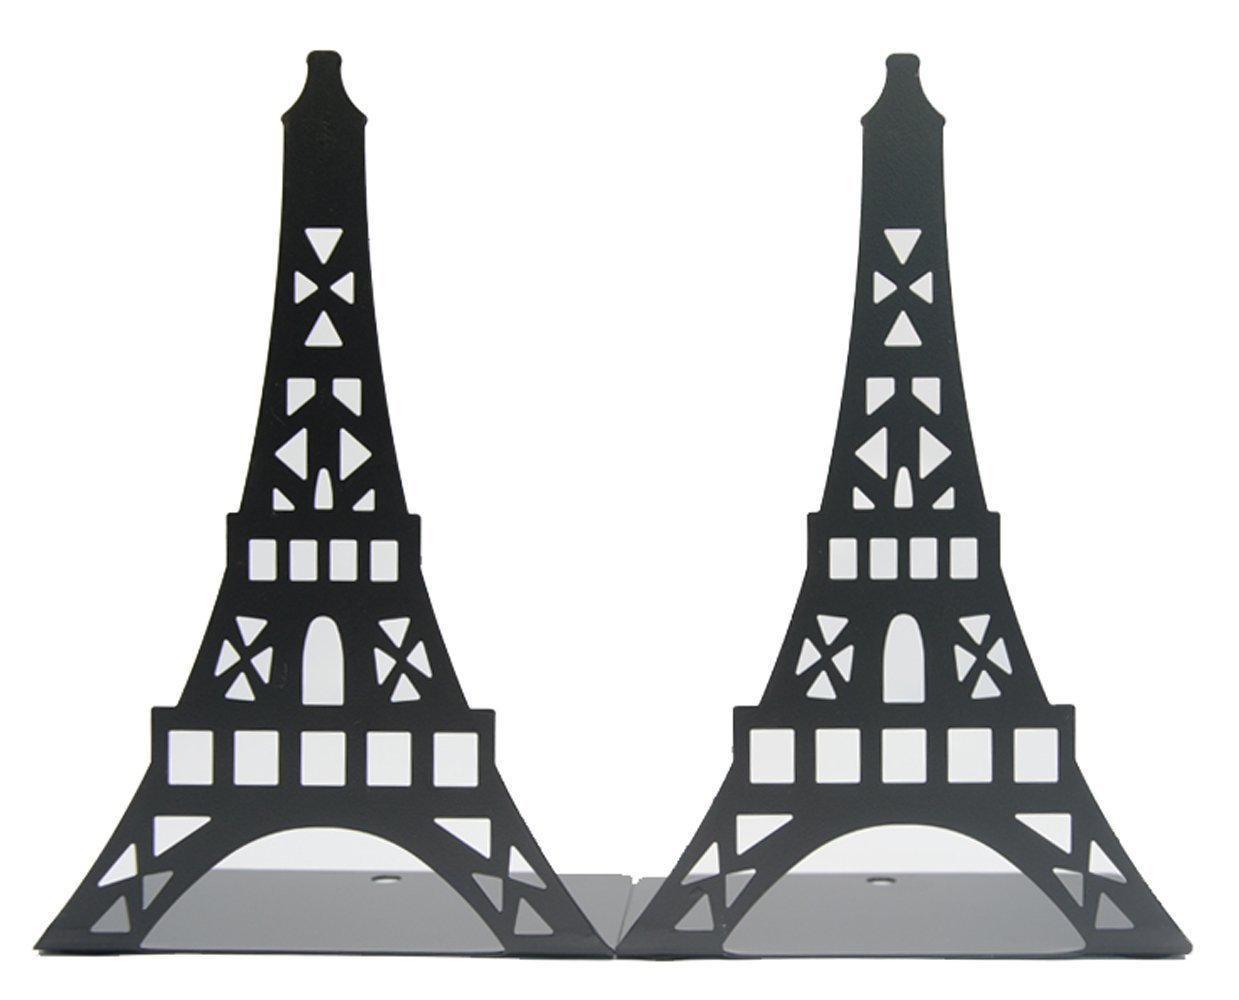 Ahkea Eiffel Tower Shaped Bookends - Creative Iron Bookends For Kids Children Bedroom Library School Office Desk Study Gift (Black)